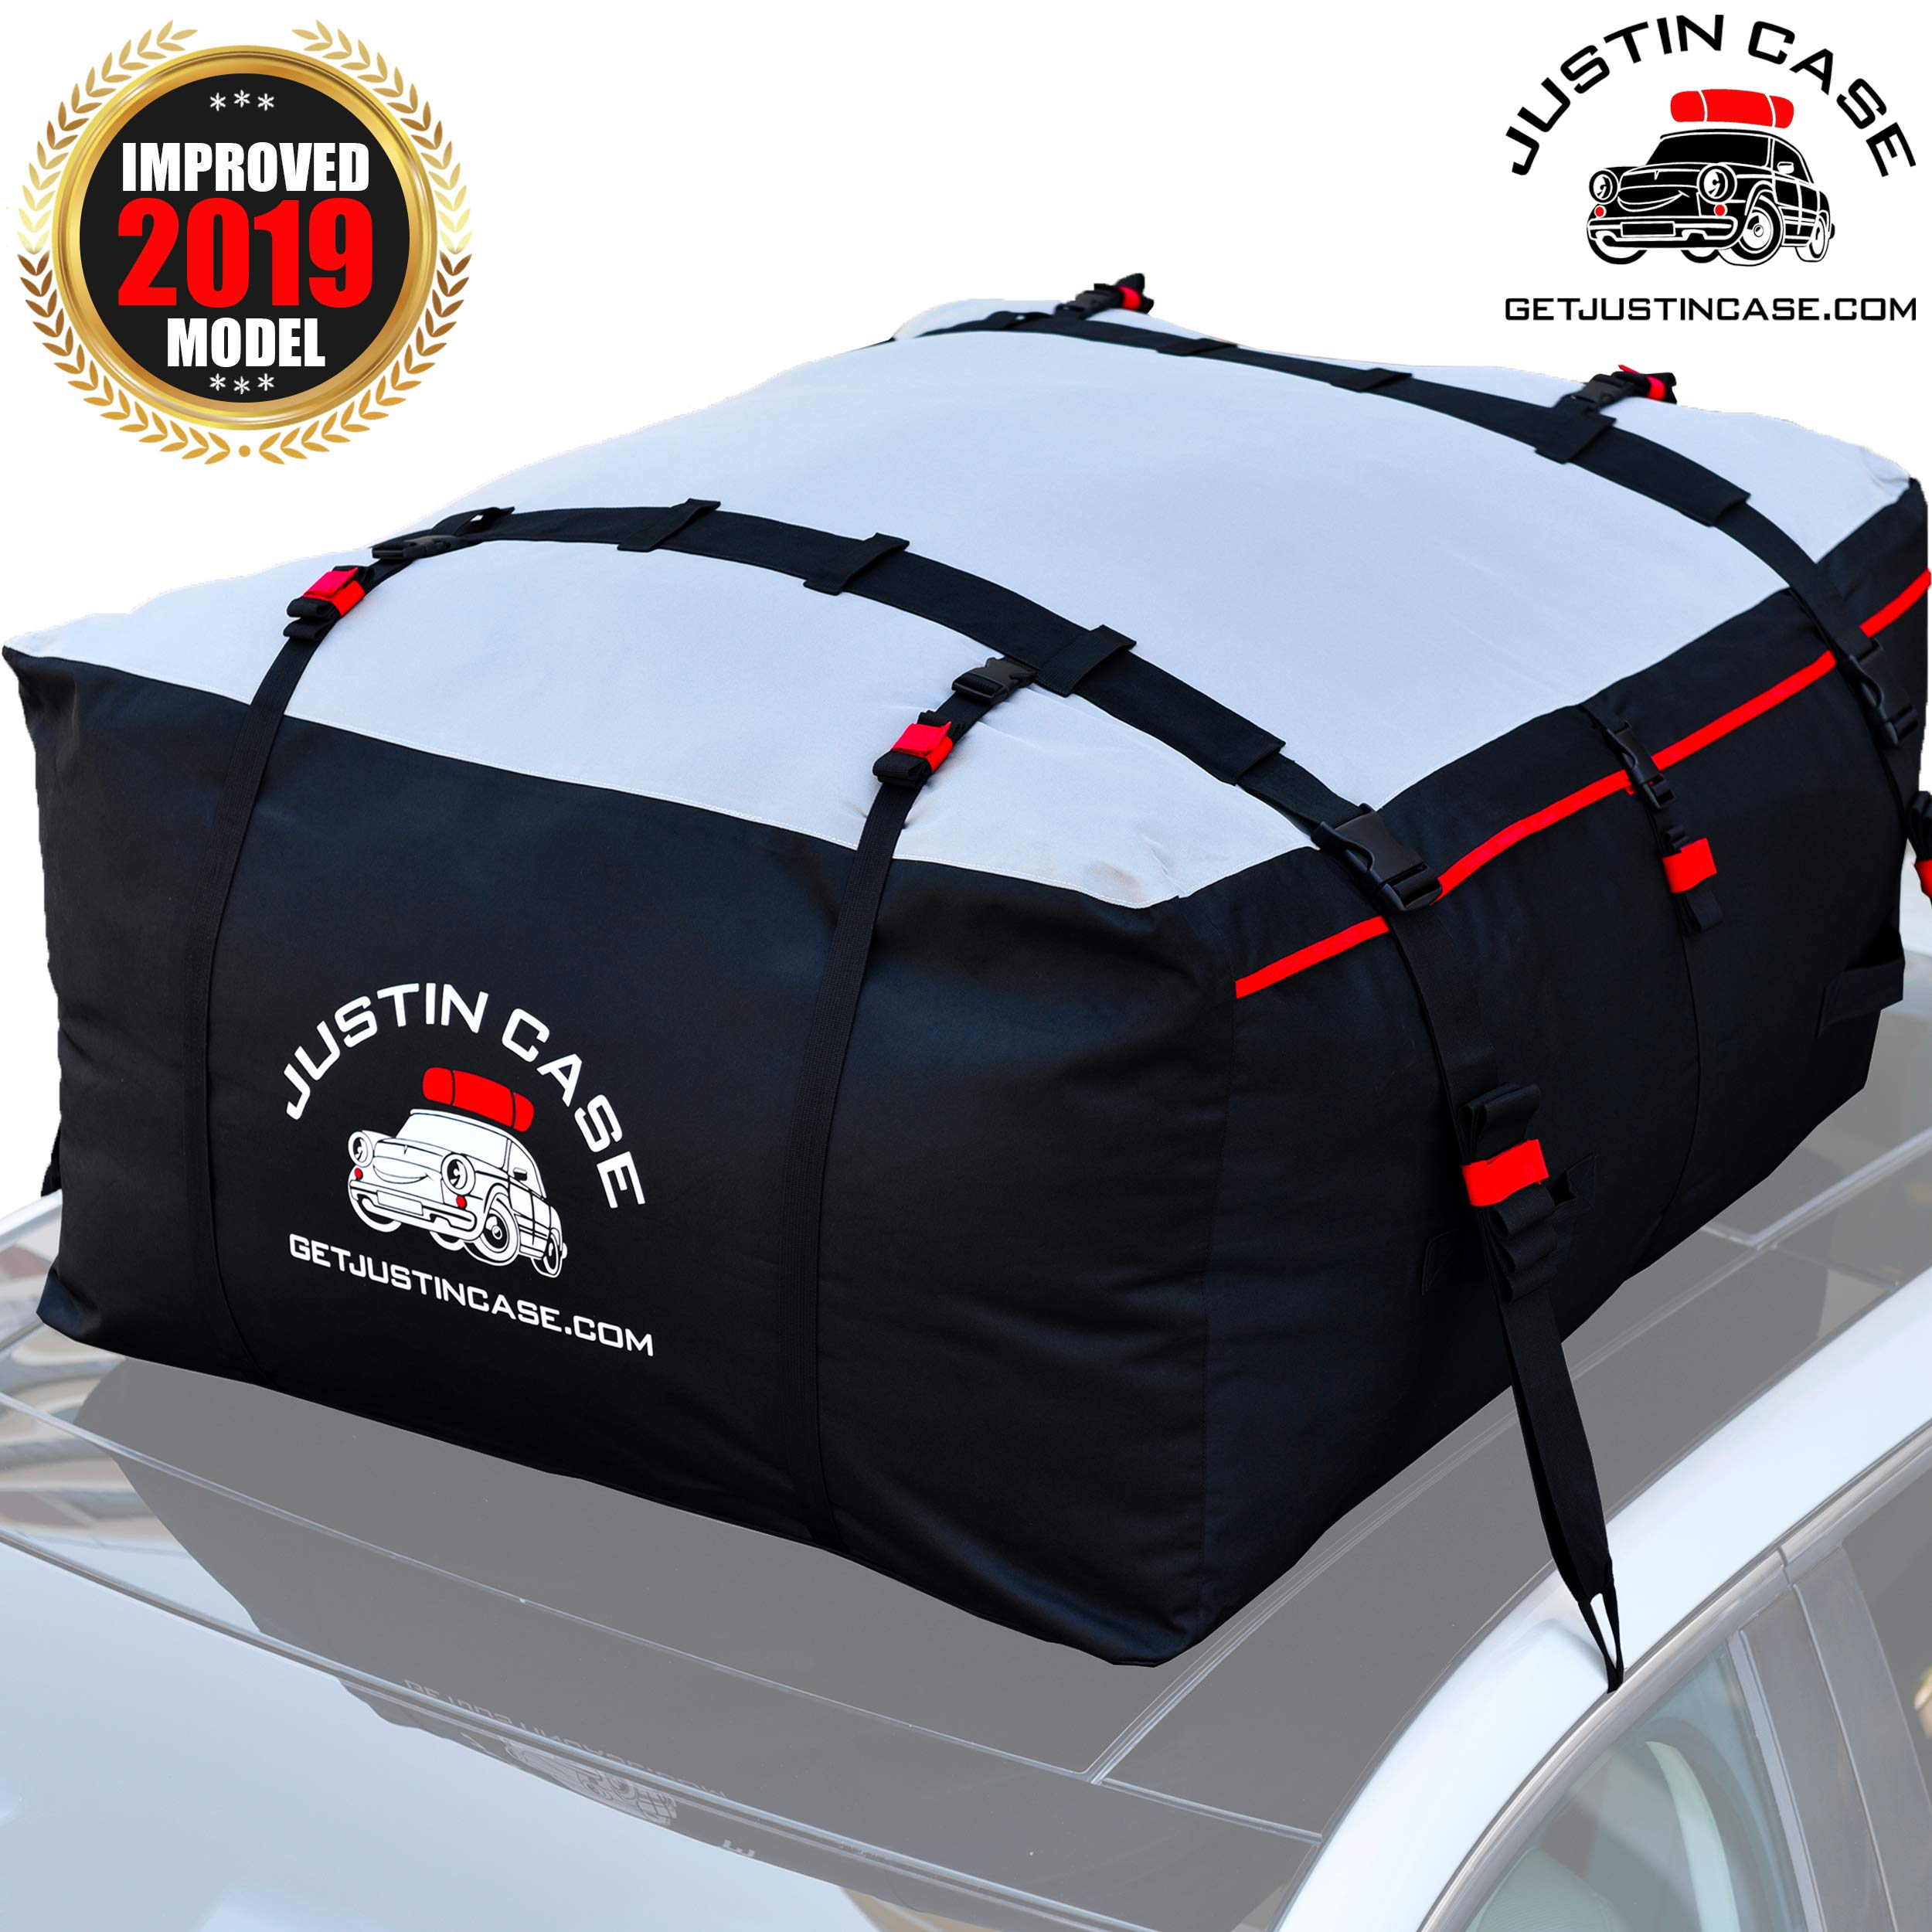 Justin Case Rooftop Cargo Carrier - Car Top Carrier – Roof Bag -19 Cubic Feet – Heavy Duty, Waterproof Bag for Extra Car Roof Storage – Straps & Hooks Included, Works Without Roof Rack or Side Rails